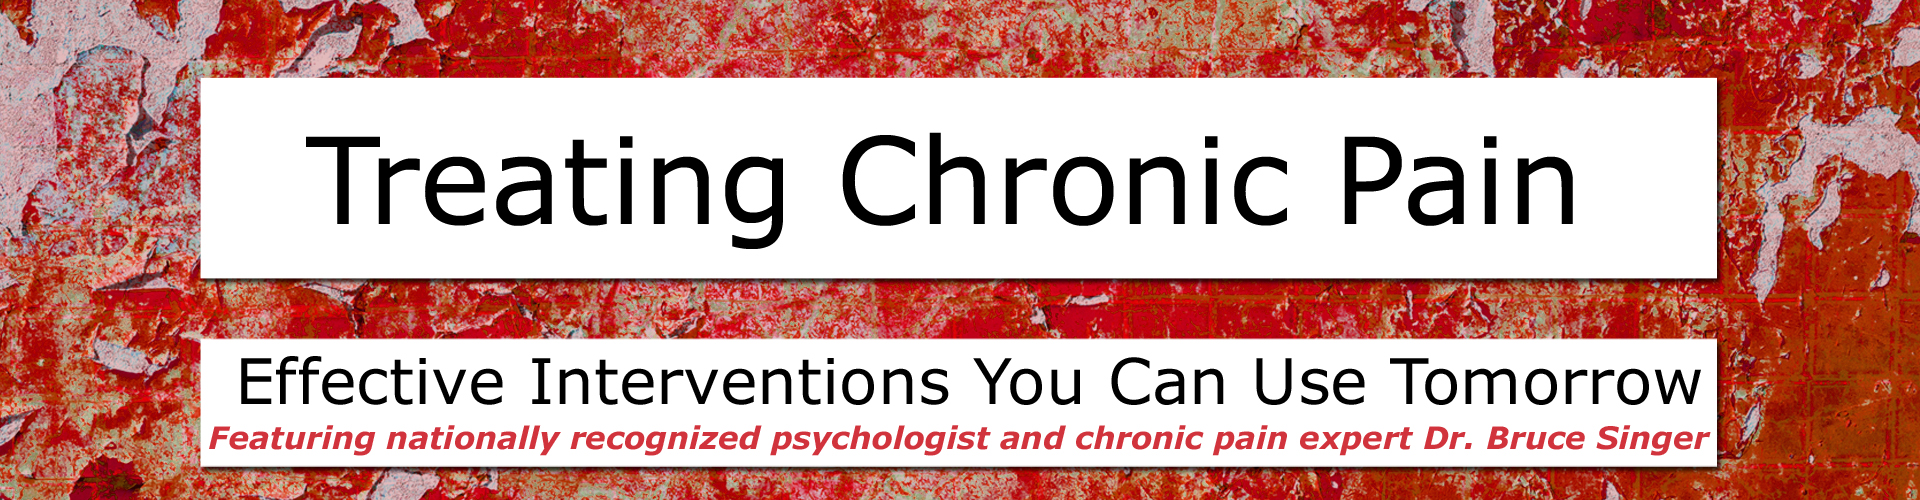 Treating Chronic Pain Header